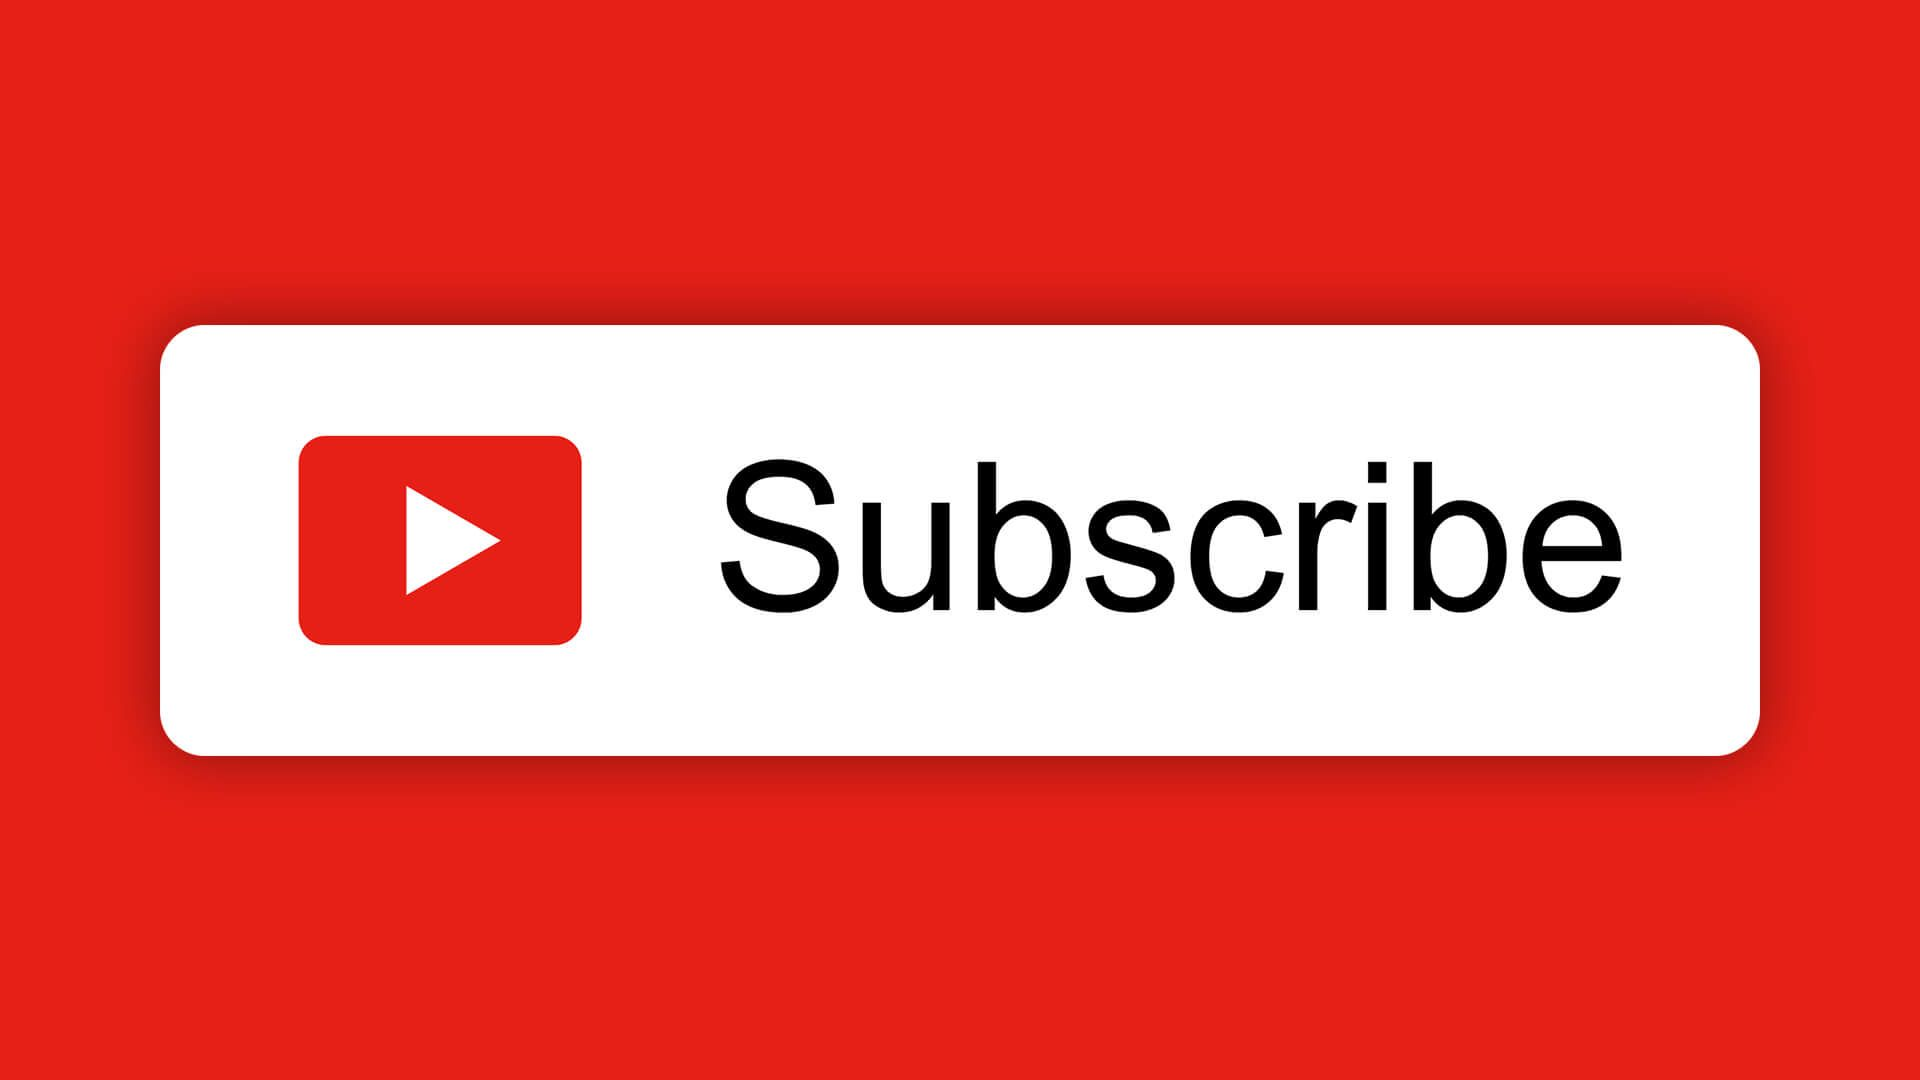 Free Youtube Subscribe Button Download Design Inspiration Gambar